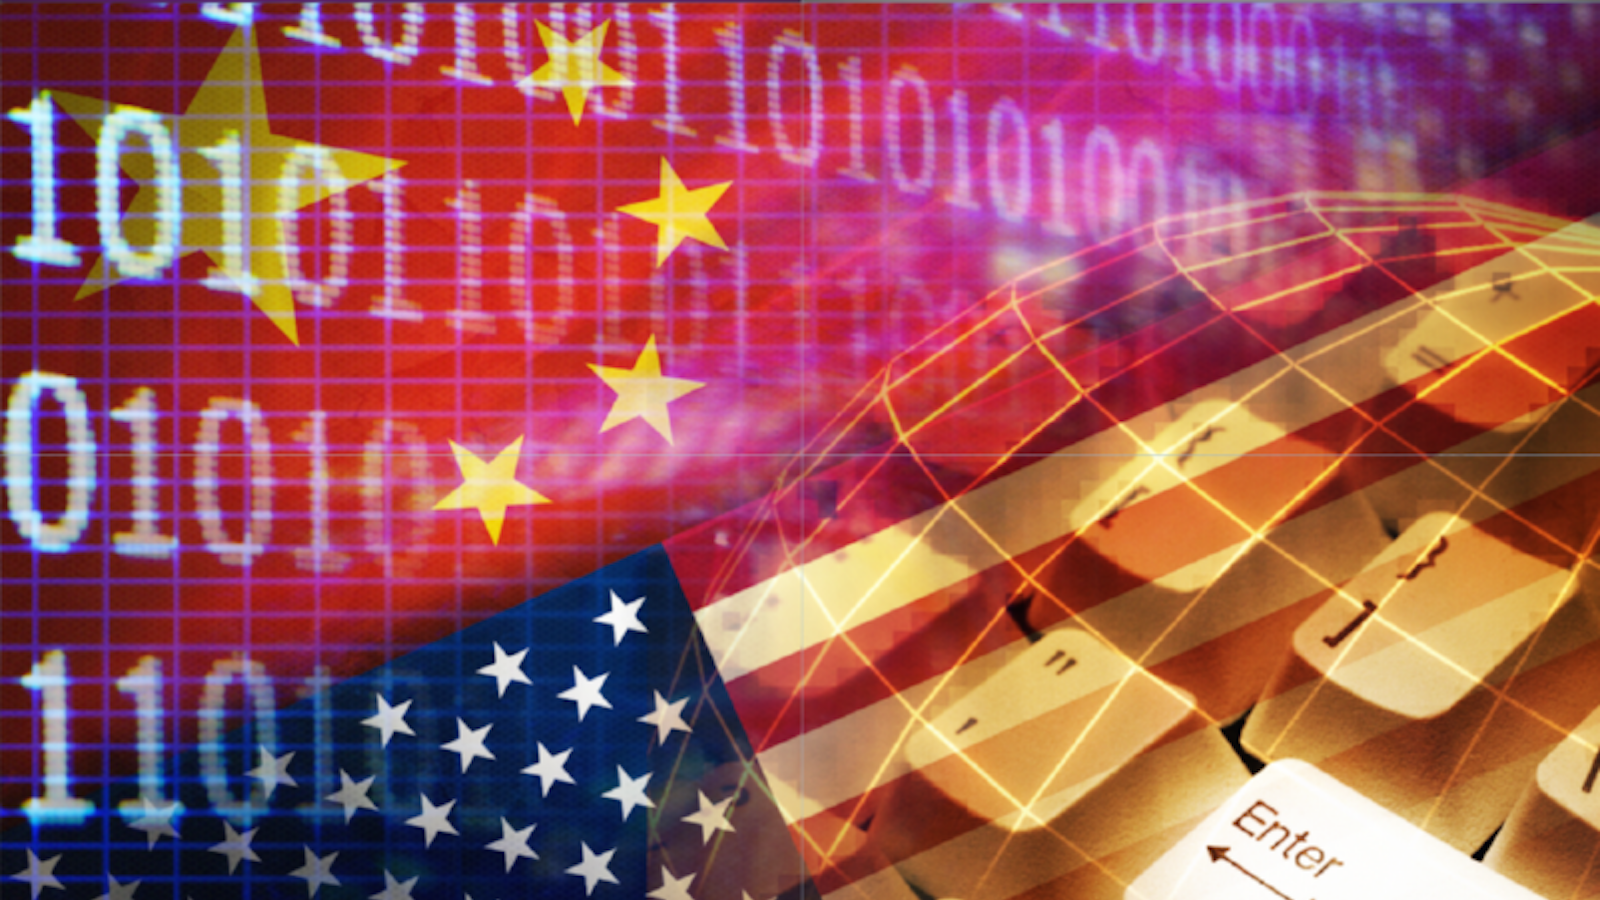 U.S. and China: Fear of a new cold war